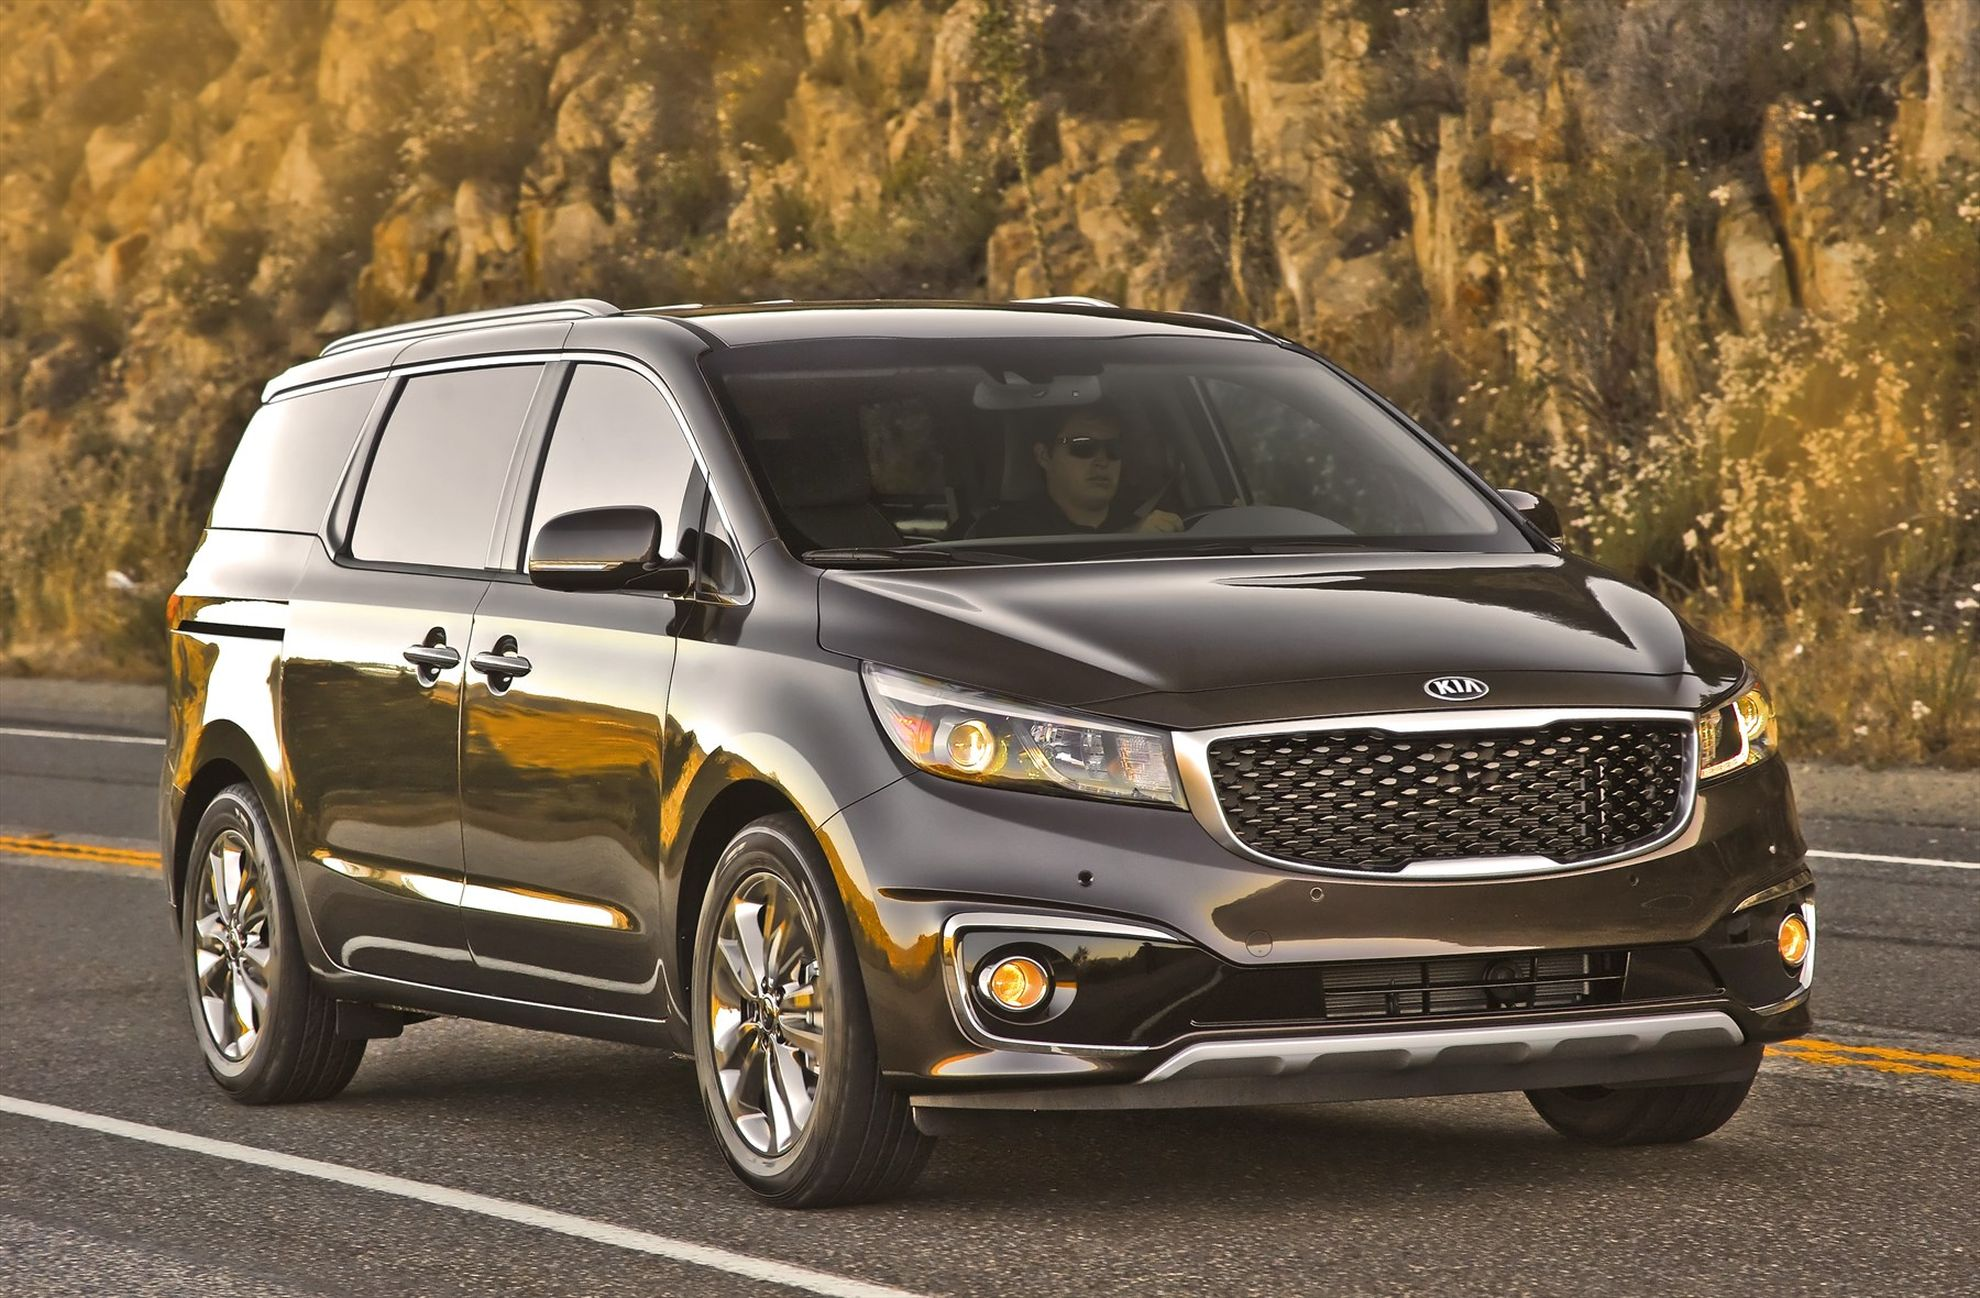 KIA-Sedona-coming-to-South-Africa-receives-NHTSA-5-star-rating